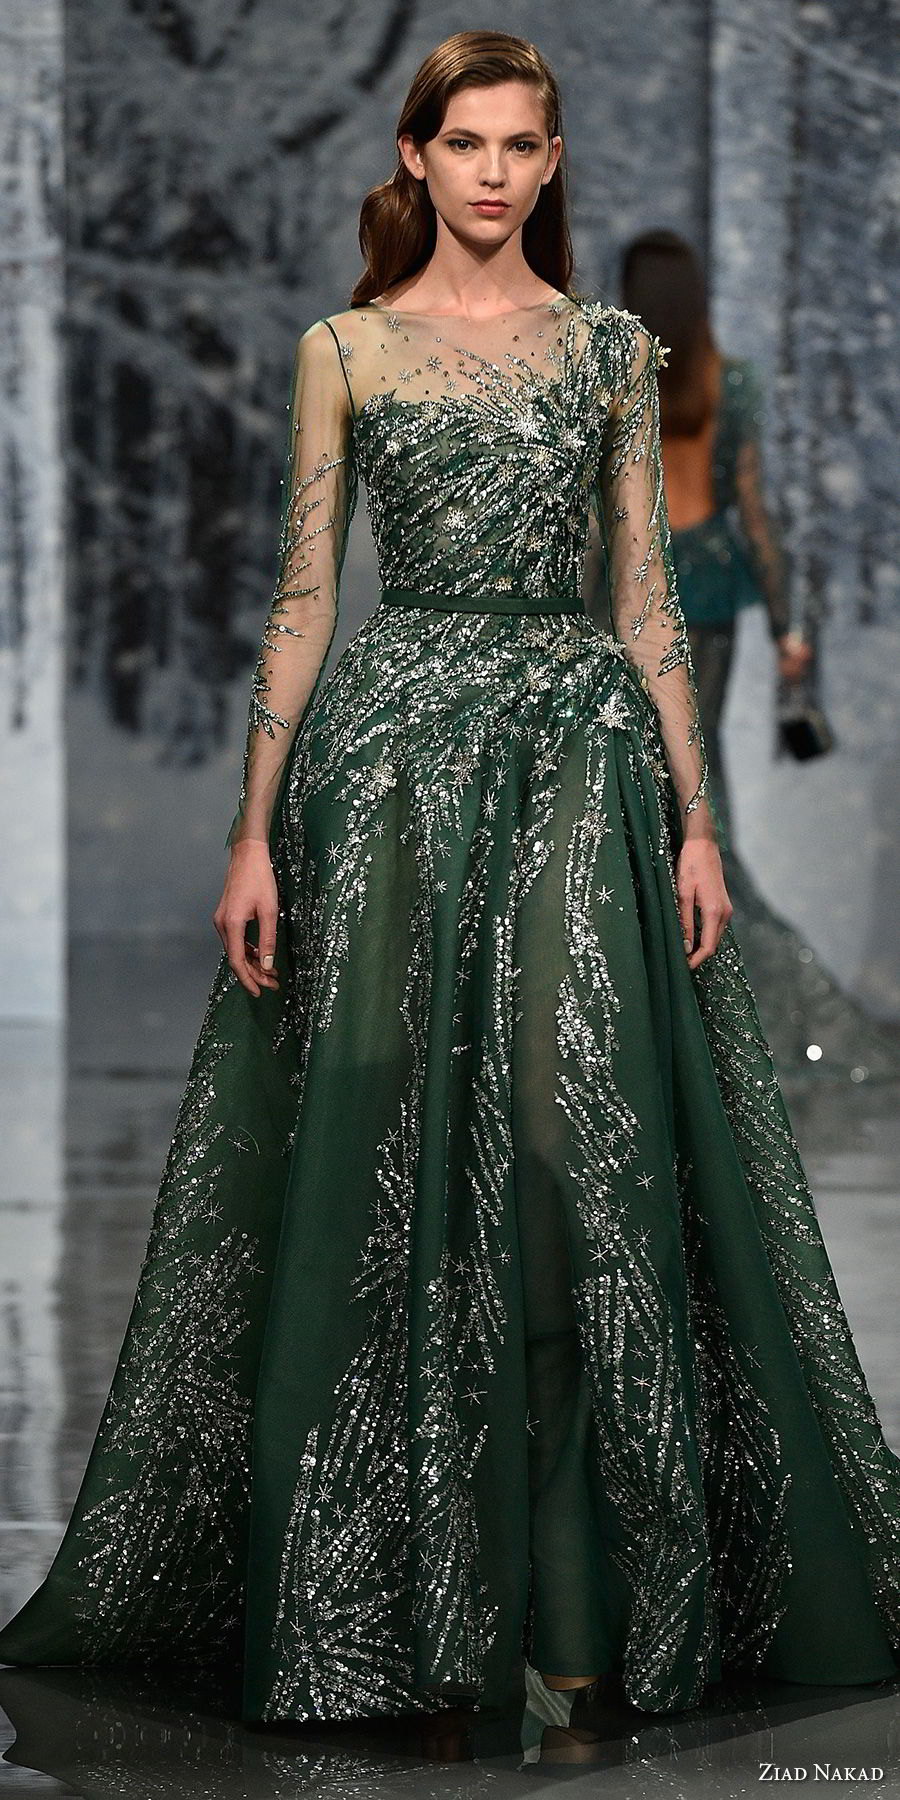 ziad nakad couture fall 2017 long sleeves illusion bateau one shoulder neckline full metallic embellishment elegant glamorous green a line wedding dress sheer button back medium train (20) mv